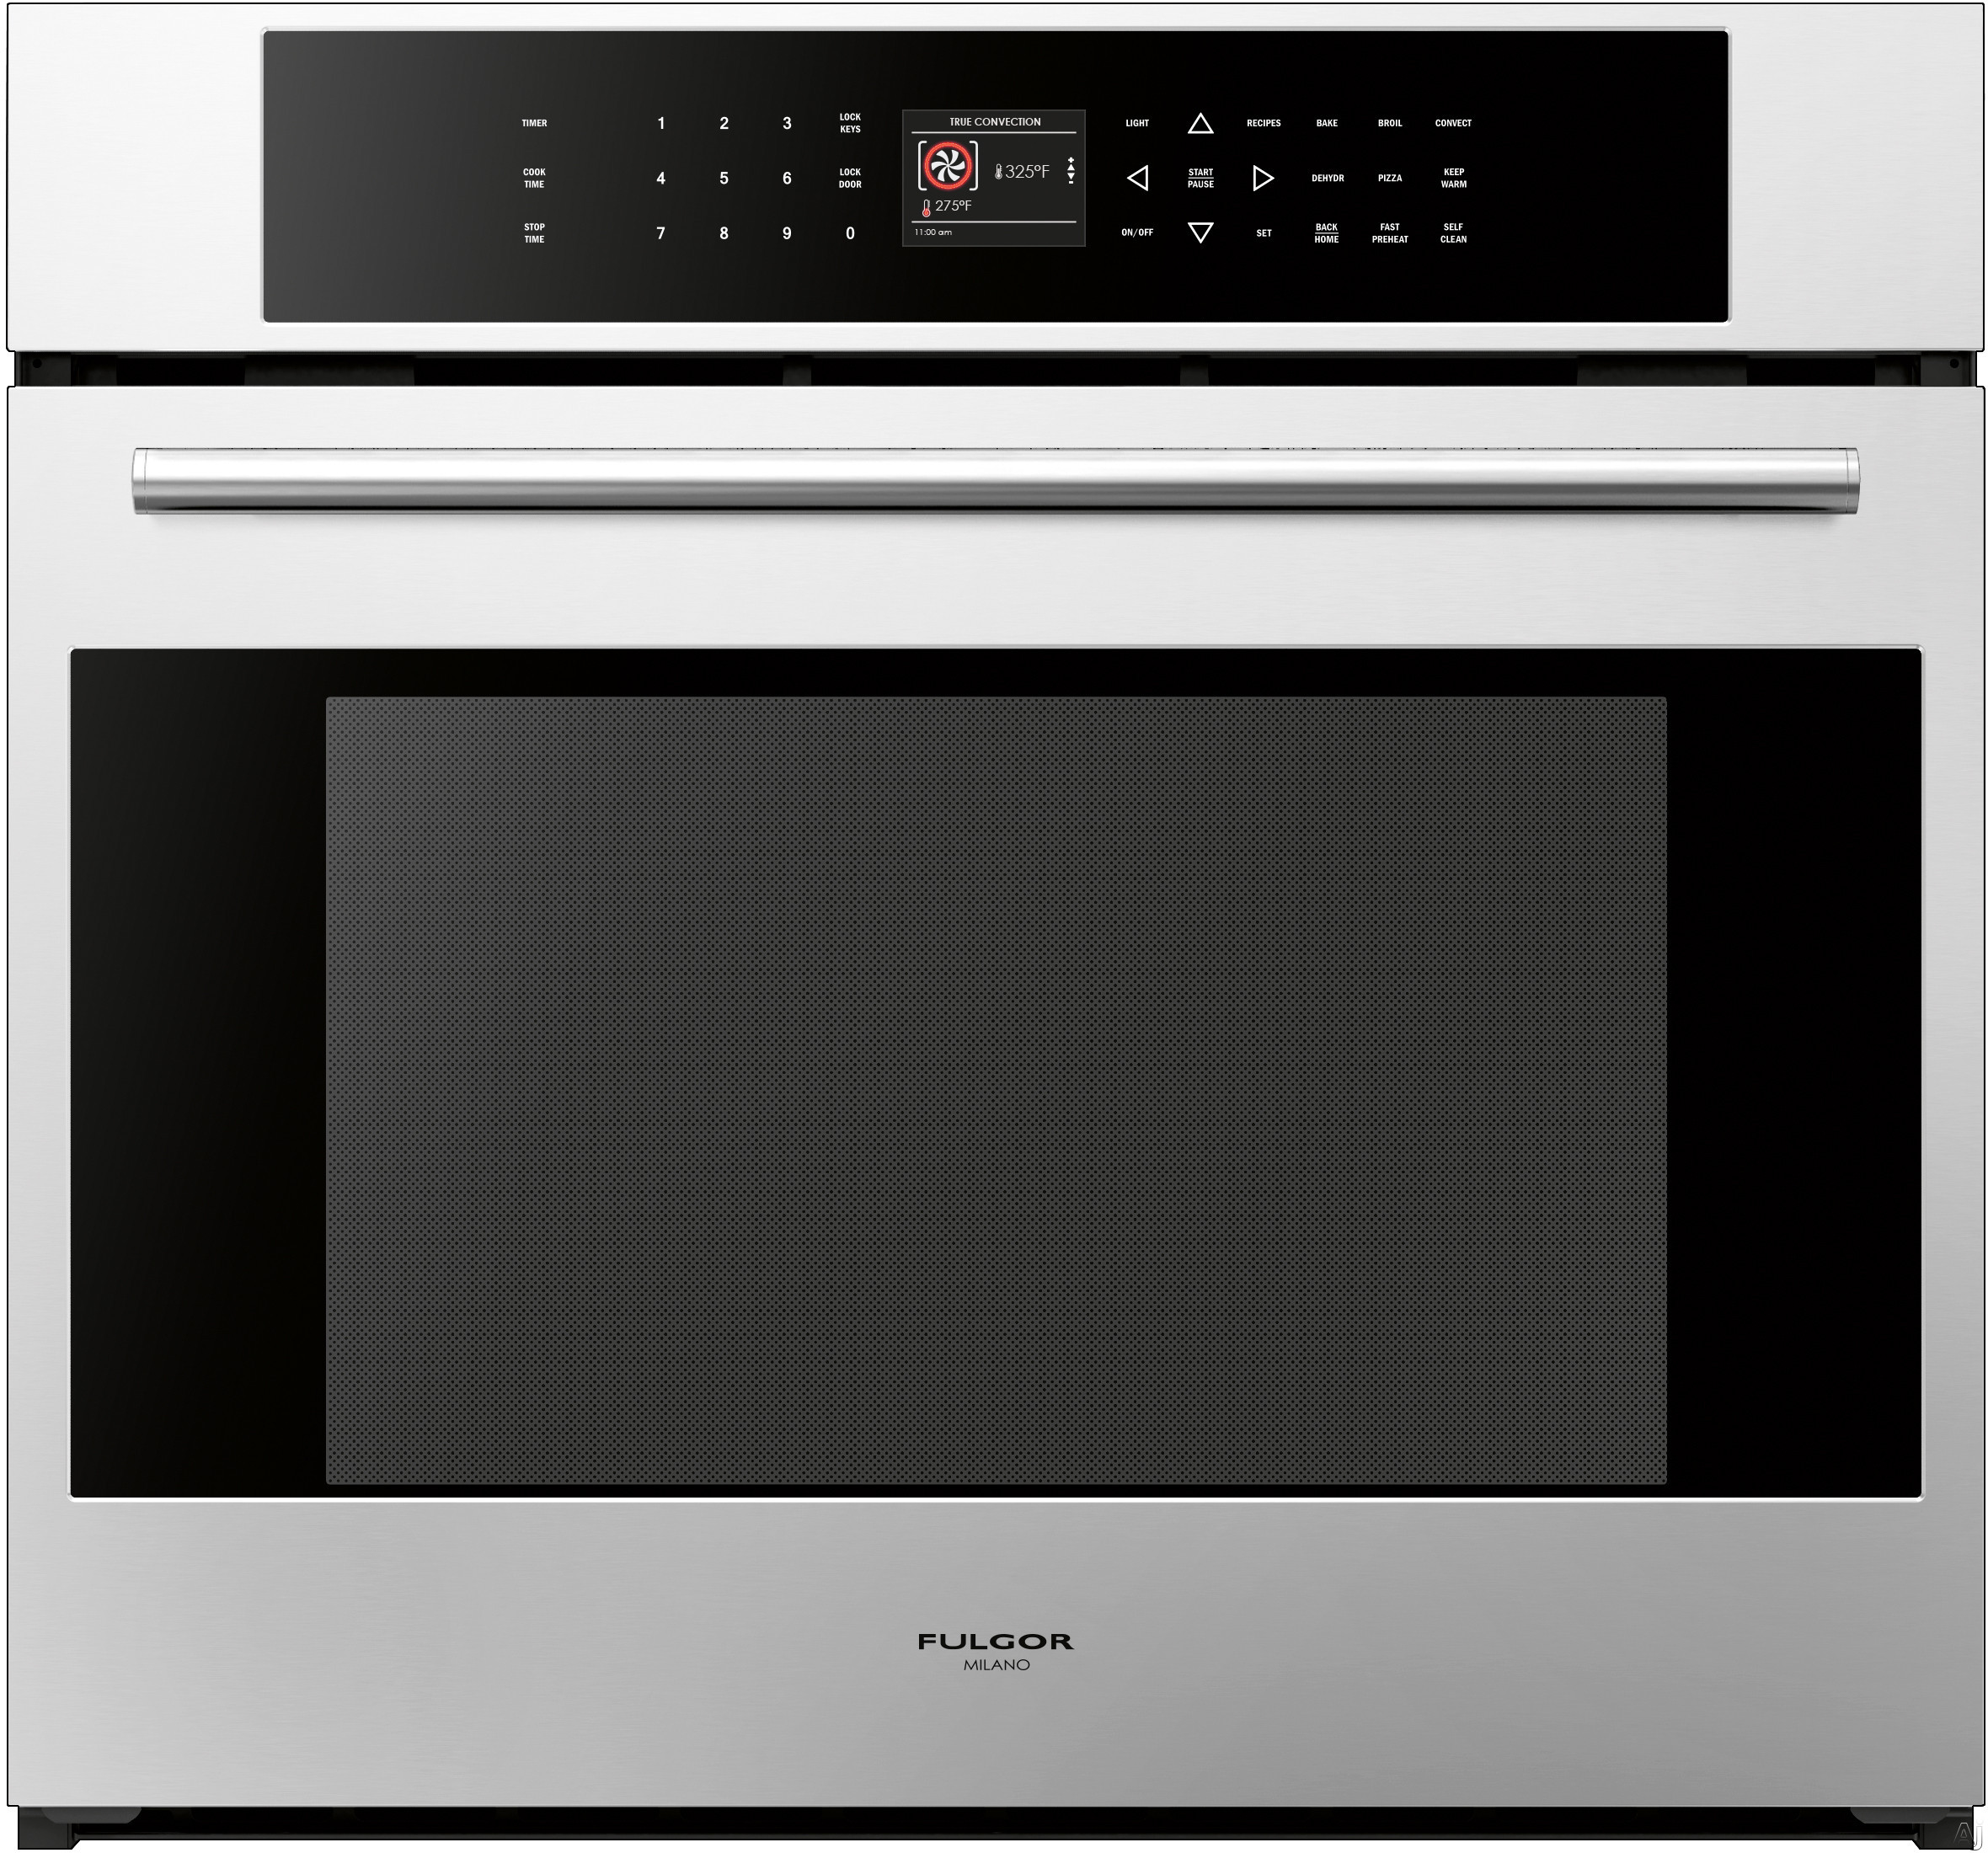 Fulgor Milano 700 Series F7SP30S1 30 Inch Single Electric Wall Oven with 4.4 cu. ft. Gross Capacity, Dual True Convection Cooking, Meat Probe, Telescopic Rack, Interior Halogen Lighting and Cool Touch